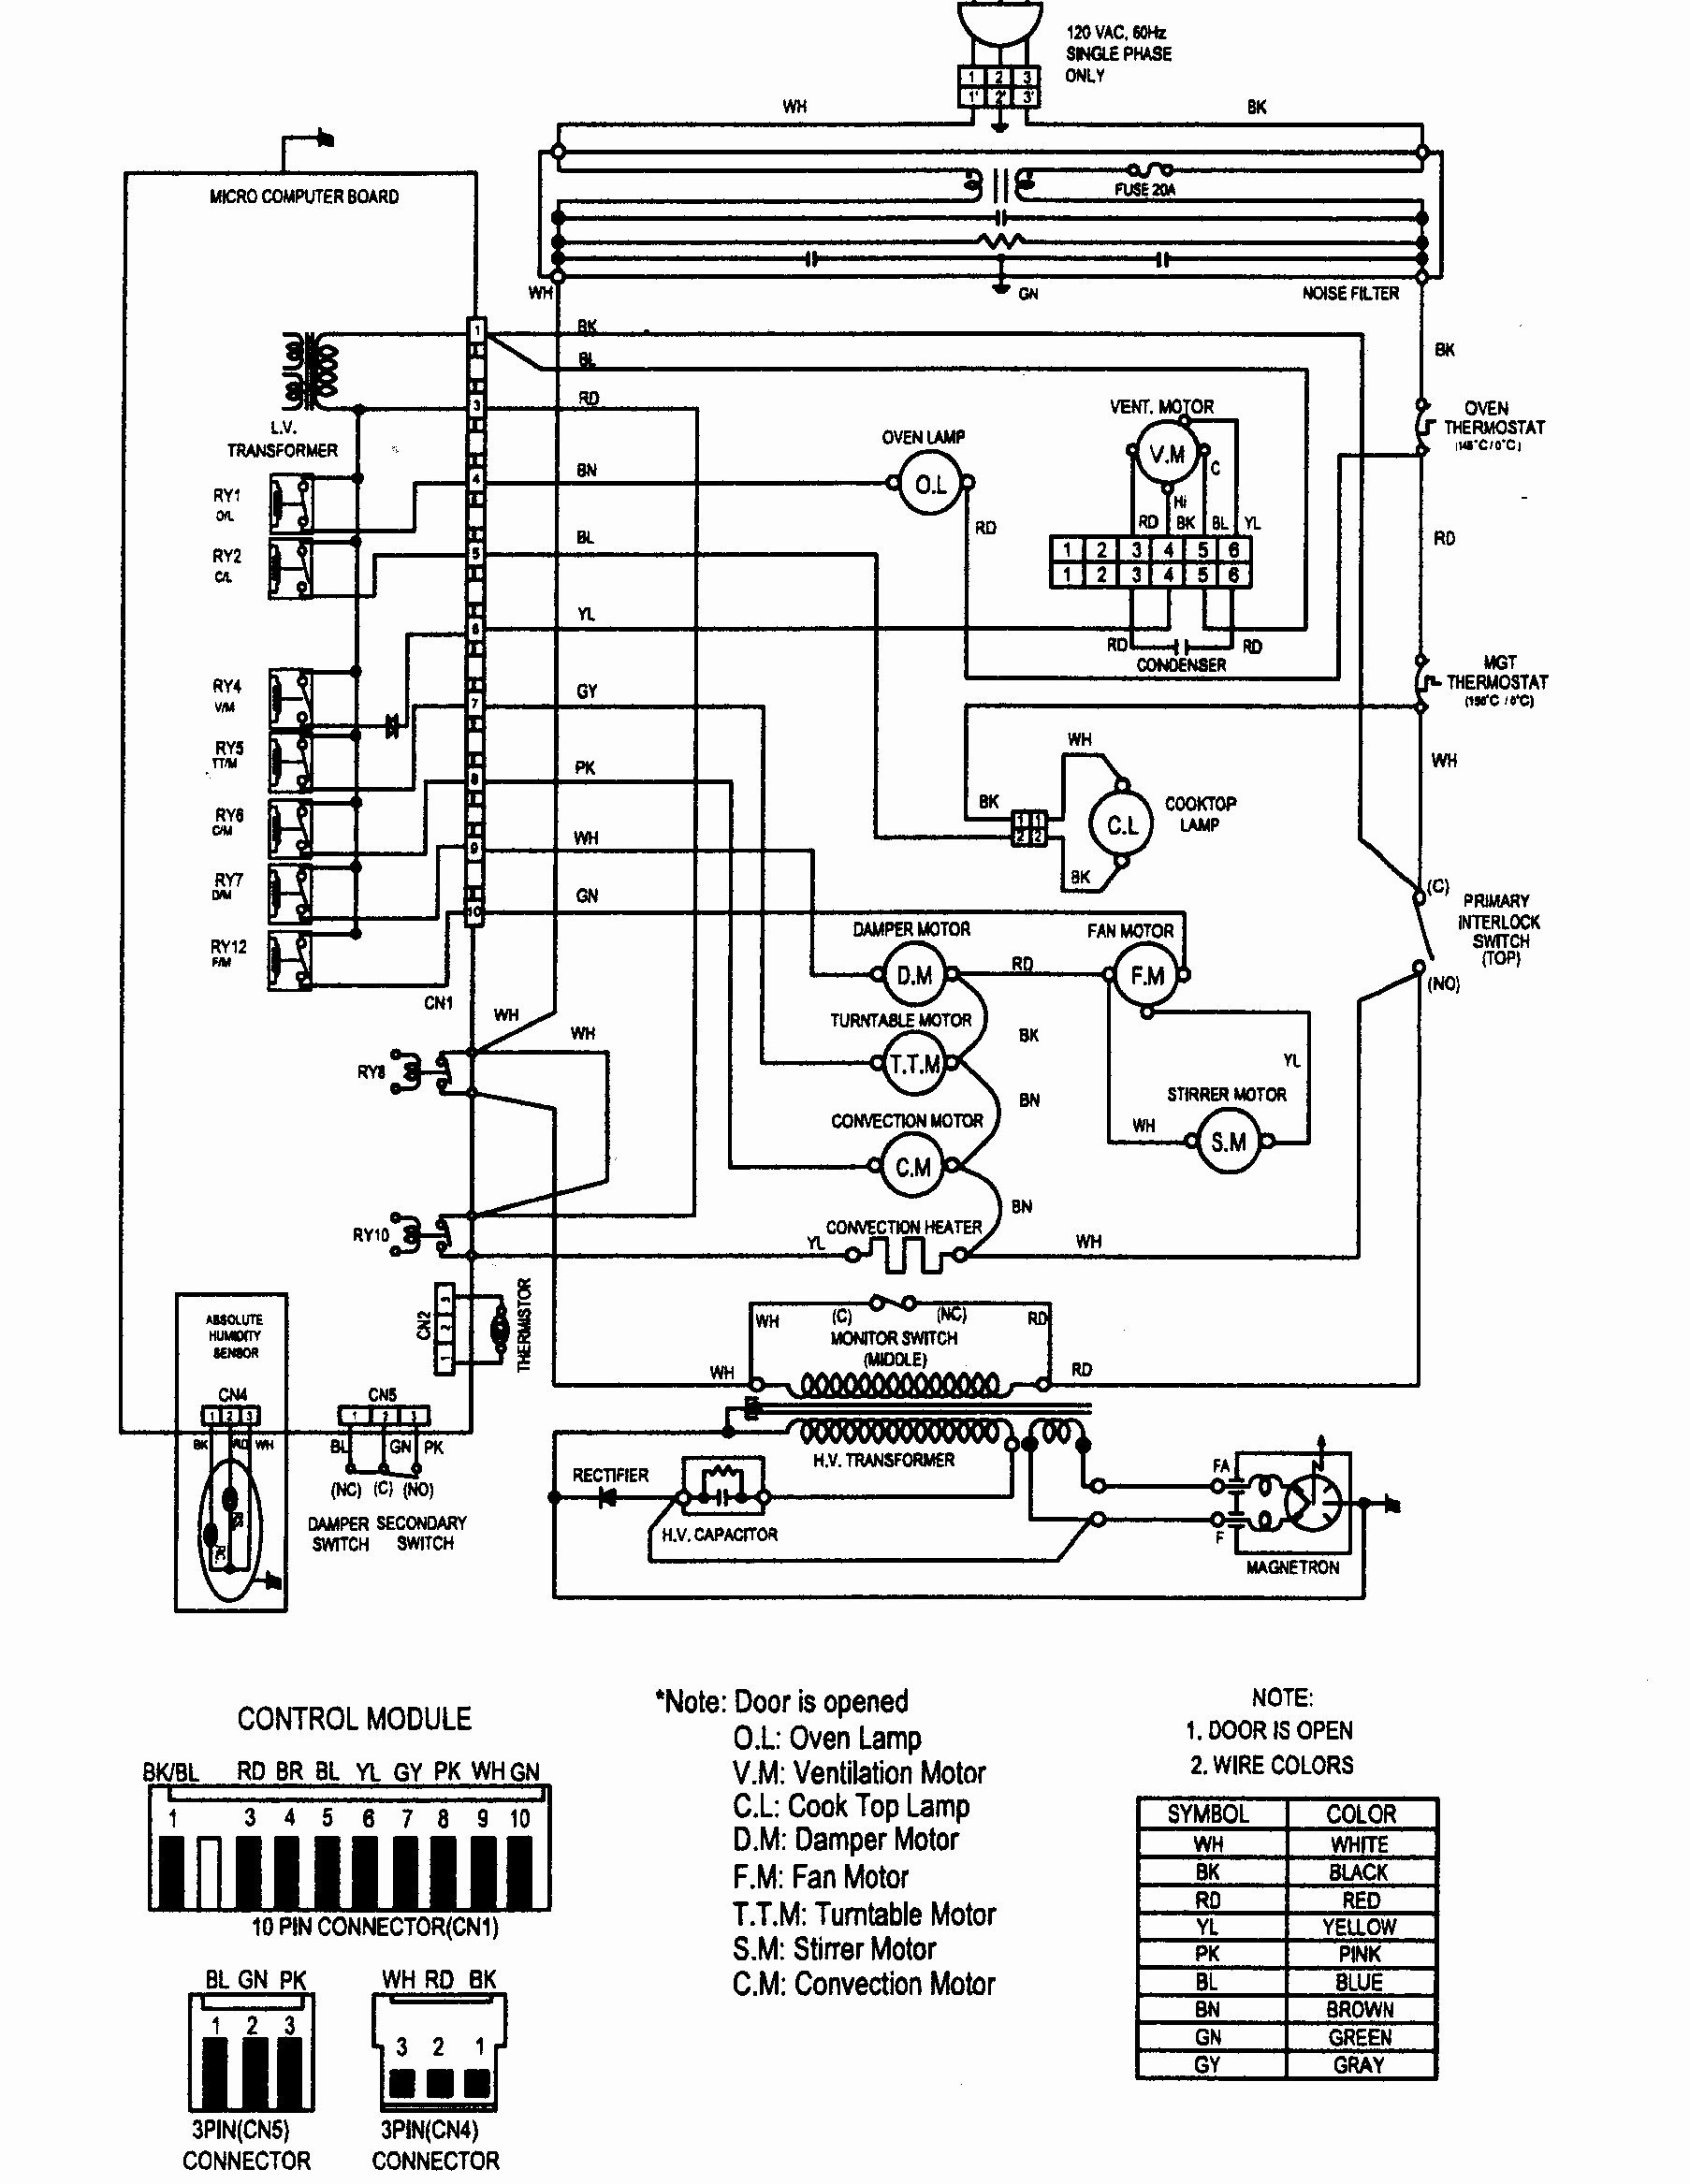 hight resolution of model wiring kenmore for schematic refrigerator 1069552681 wiring electrical schematic for kenmore refrigerator